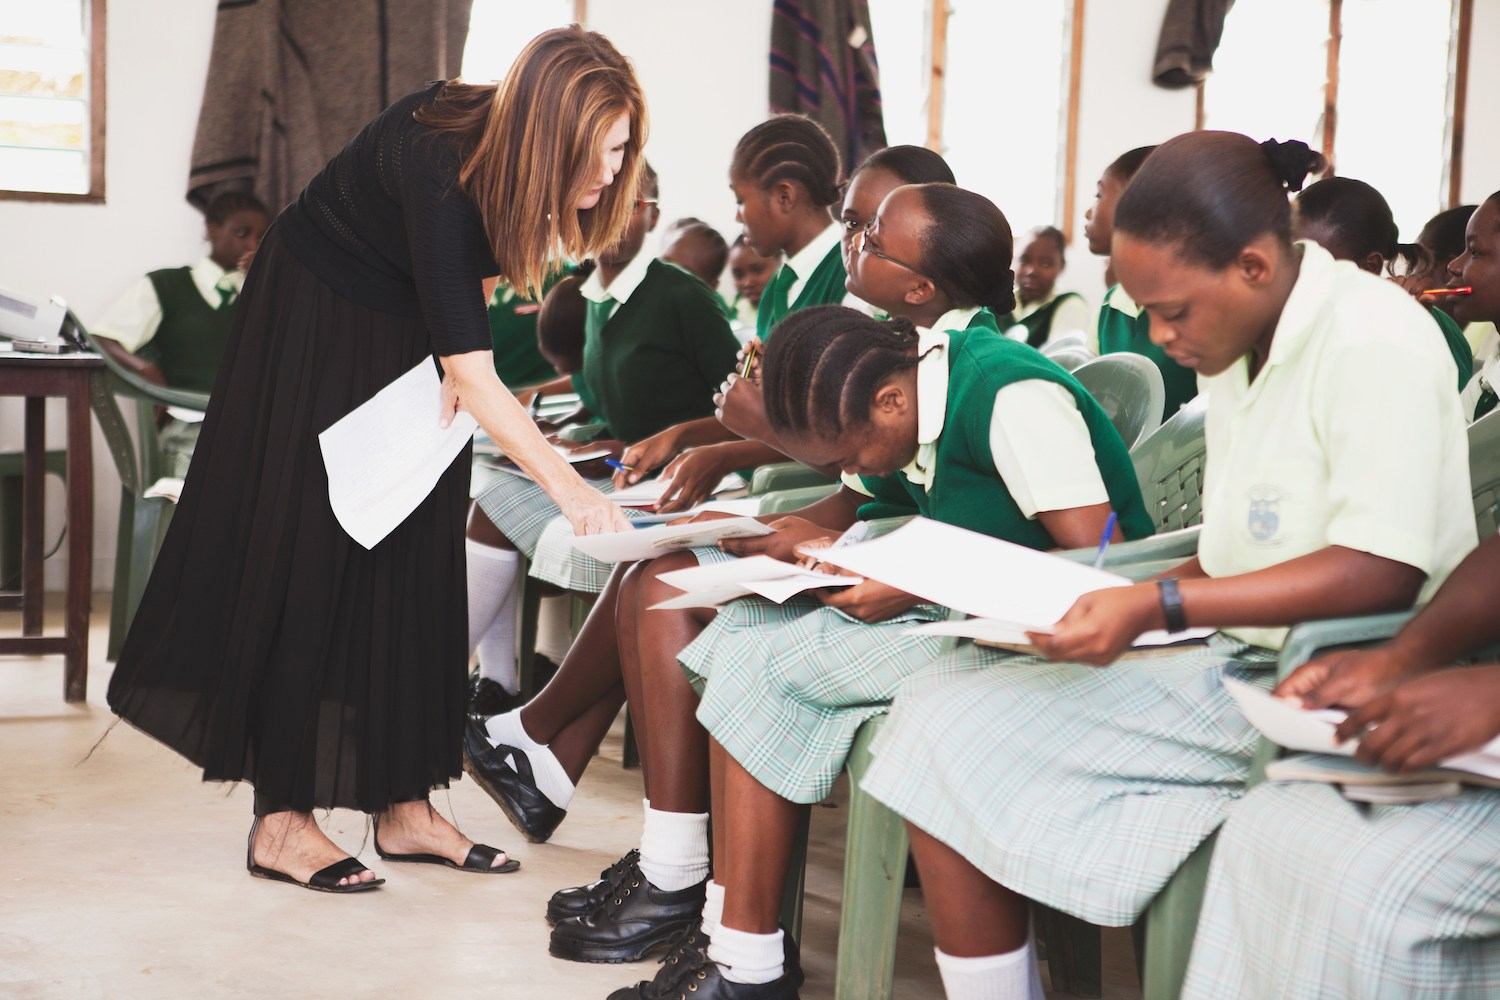 Lotte Davis working with girls in Africa (One Girl Can)